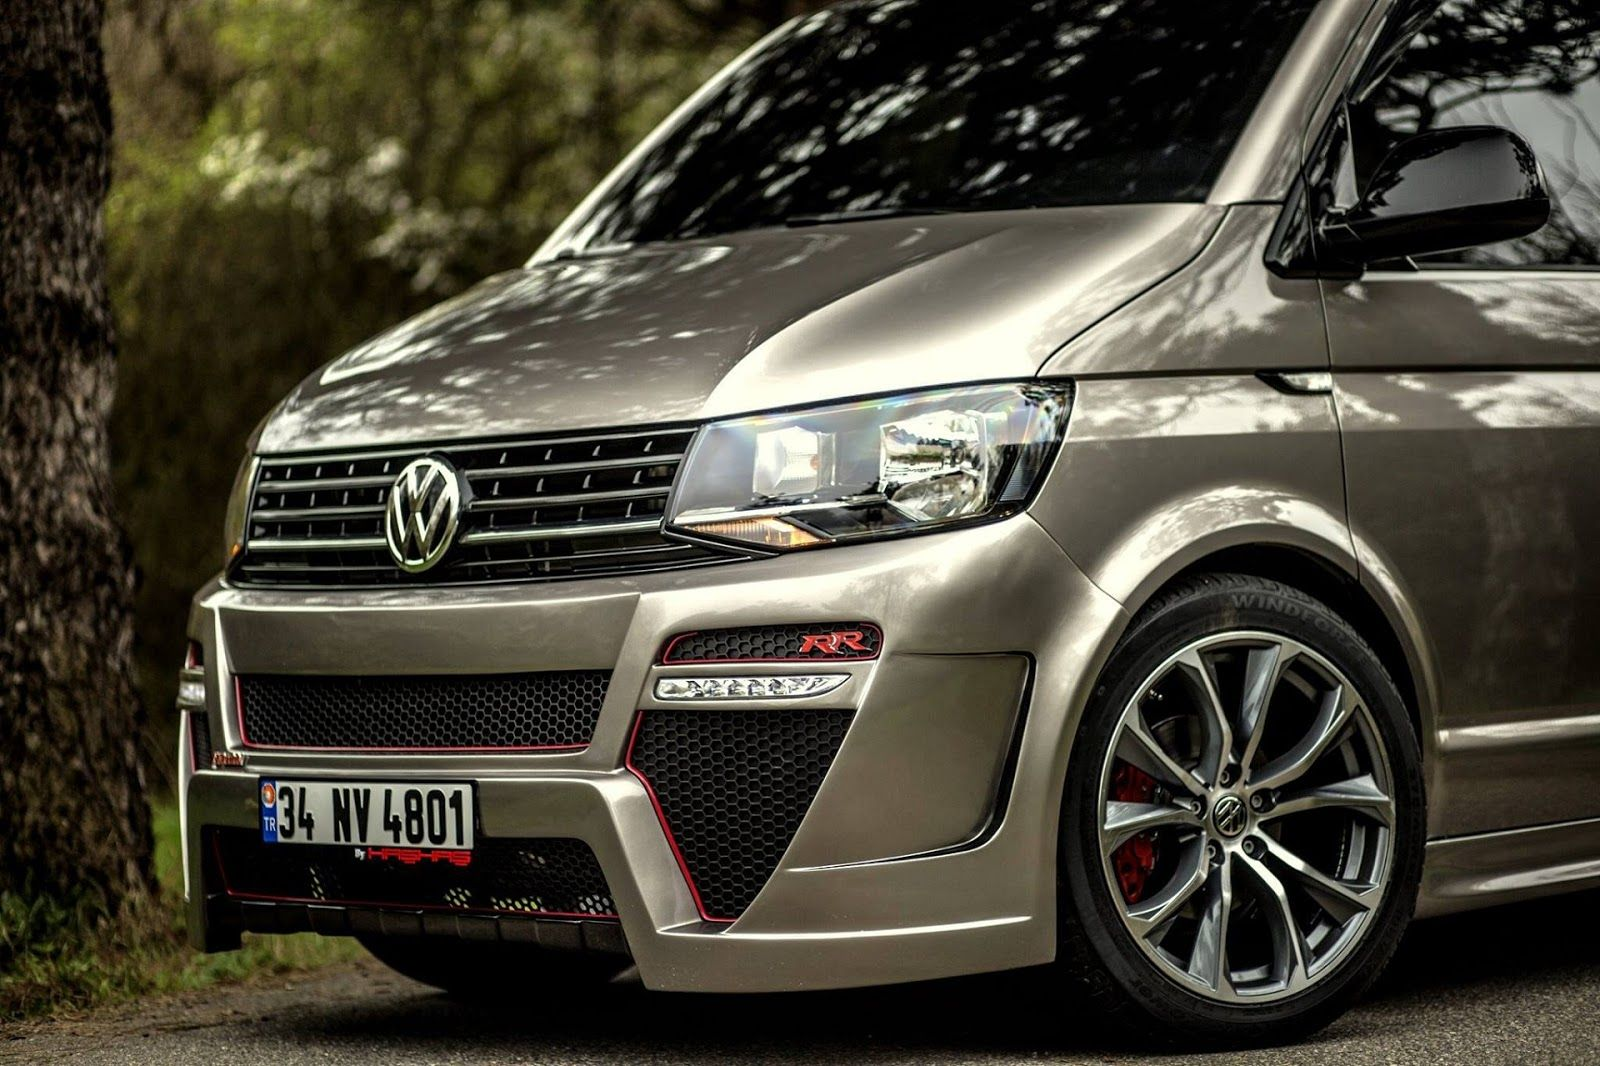 volkswagen multivan v i p vw t6 pinterest. Black Bedroom Furniture Sets. Home Design Ideas